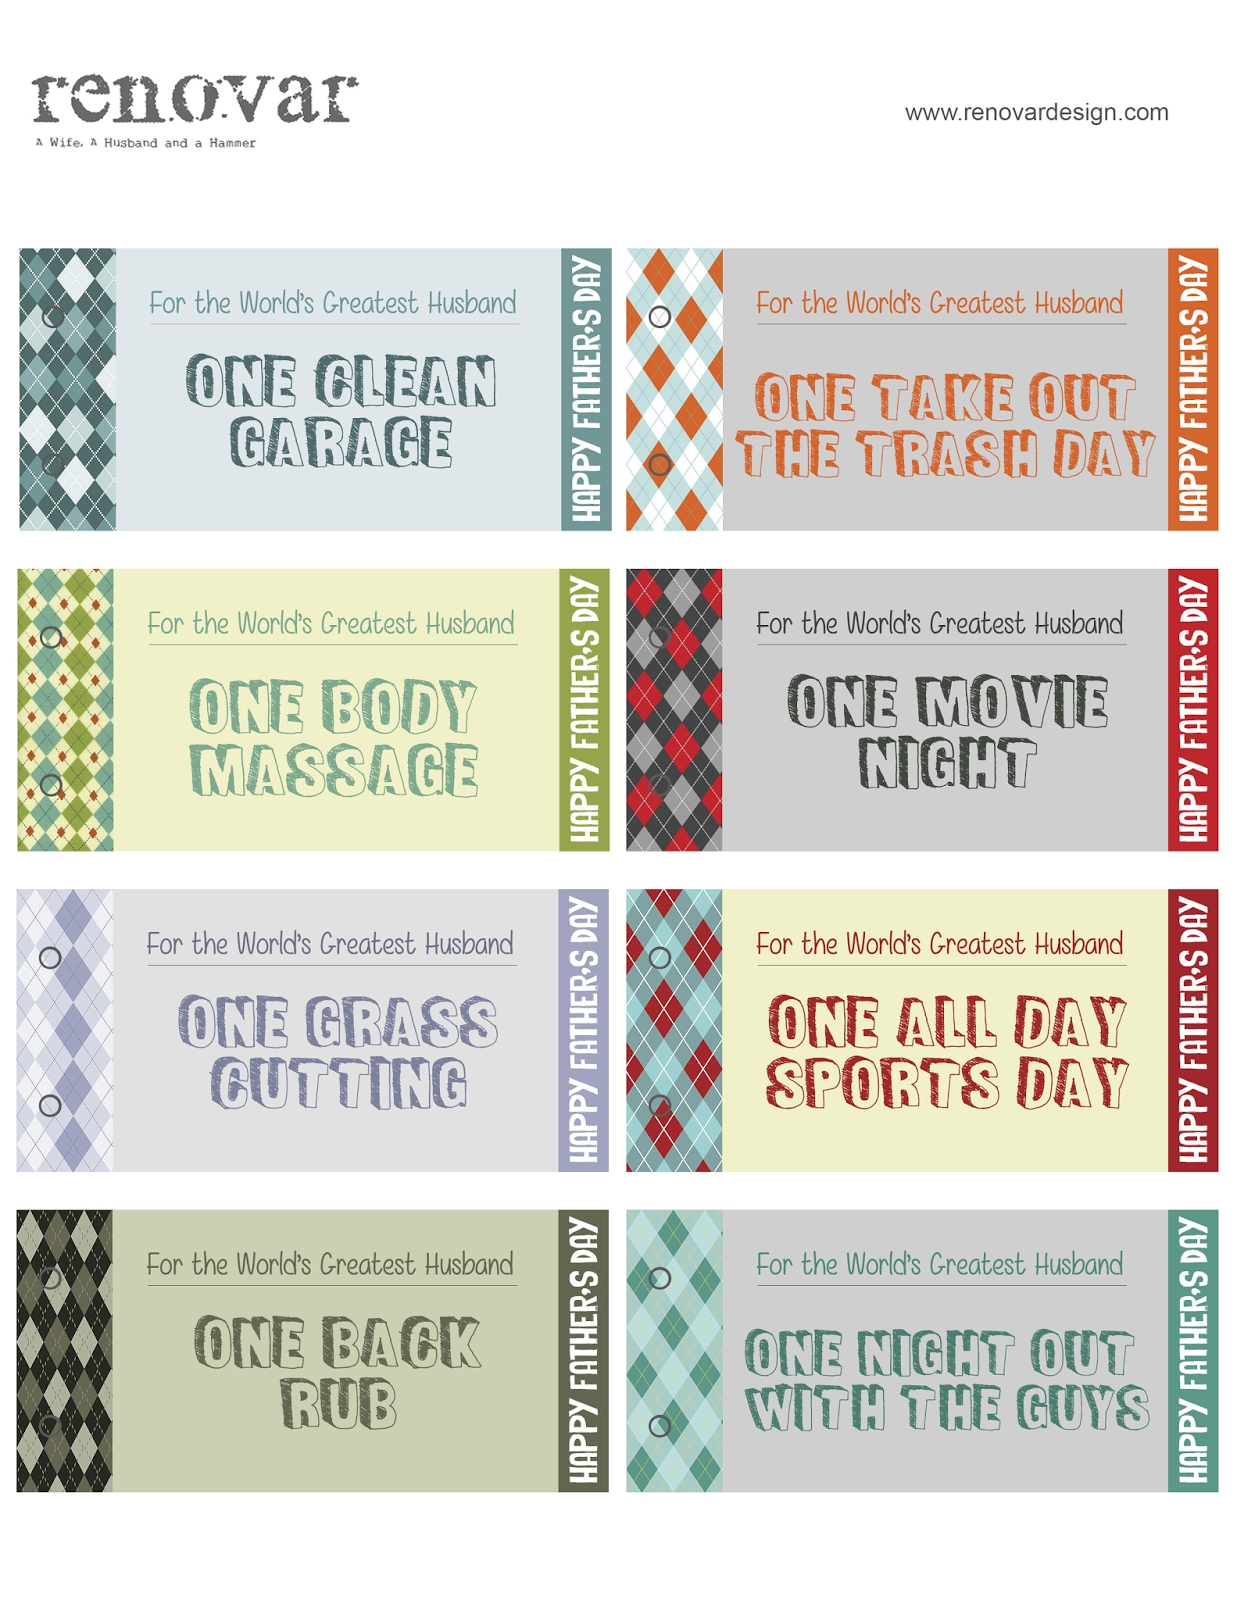 10 Attractive Valentine Coupon Book Ideas For Guys wife coupon book template couriers please coupon calculator 2020